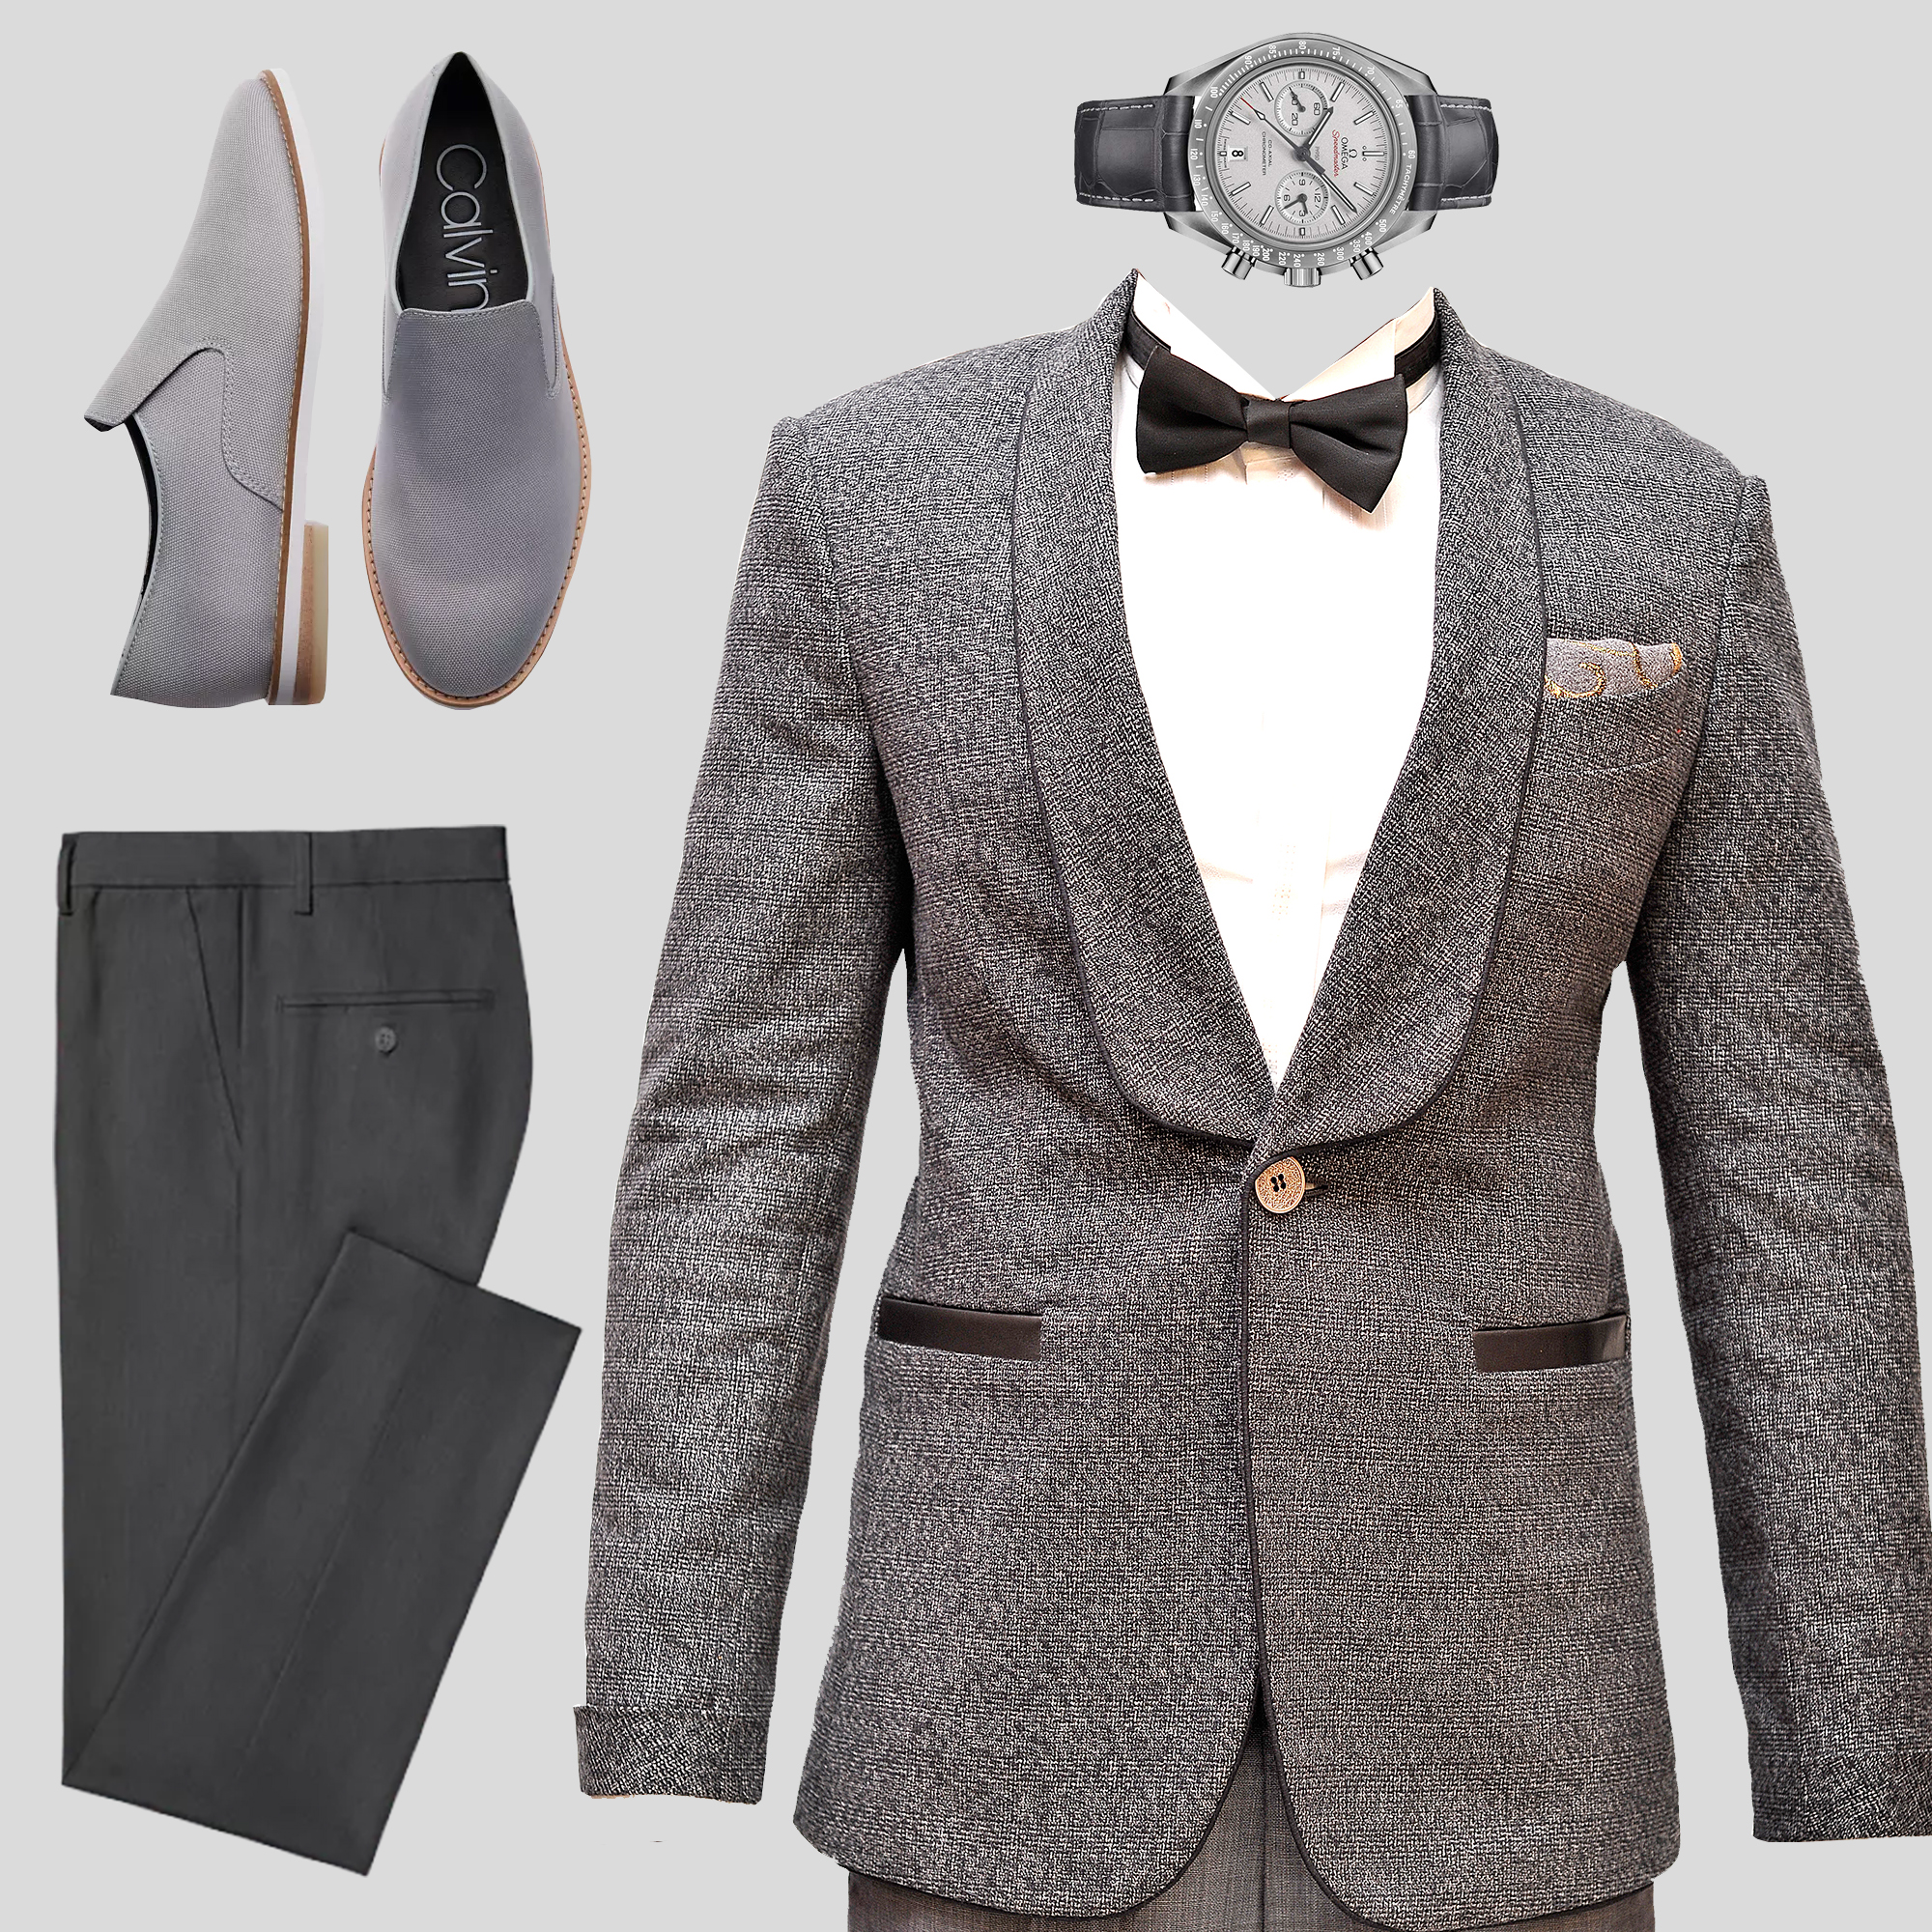 Grey designer outfits for men in Nairobi Kenya - Men's designer clothes